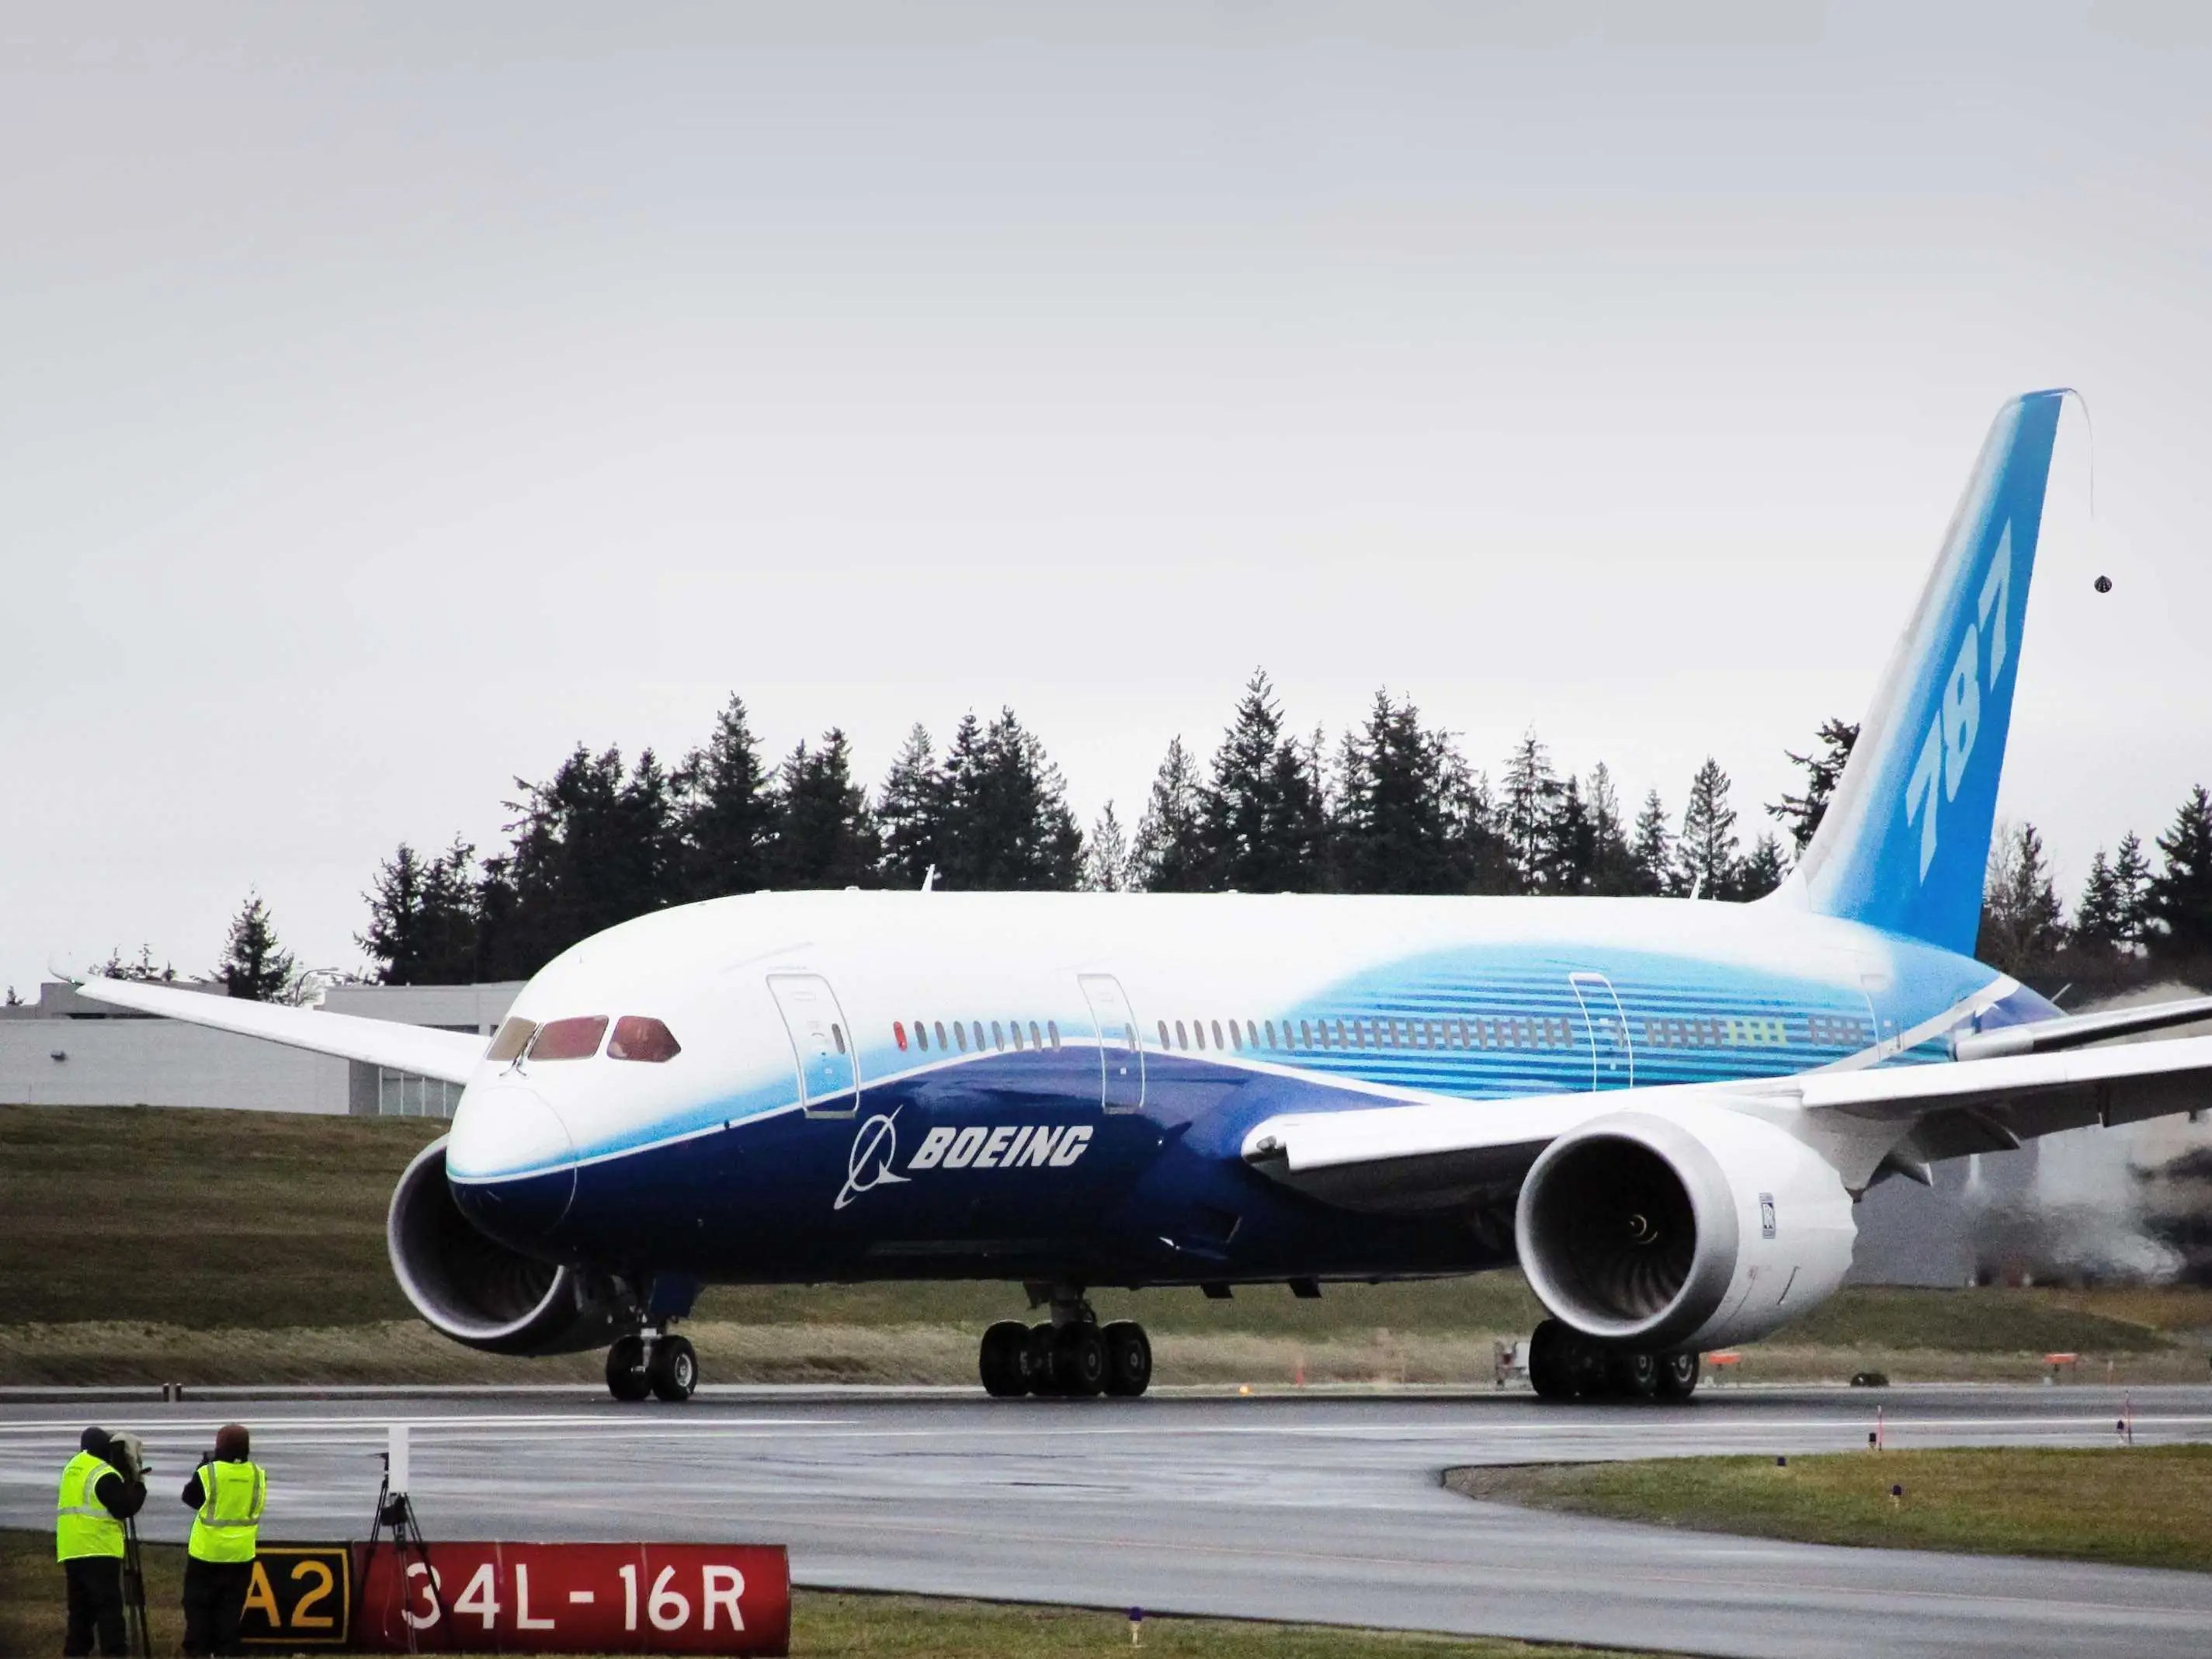 The Boeing 787-8 Dreamliner first flew in 2009 and the composite bodied airliner is renowned for its range, comfort, and fuel efficiency. But unlike its passenger ferrying compatriots, the BBJ version carries far fewer people, but is packed with a ton more features.